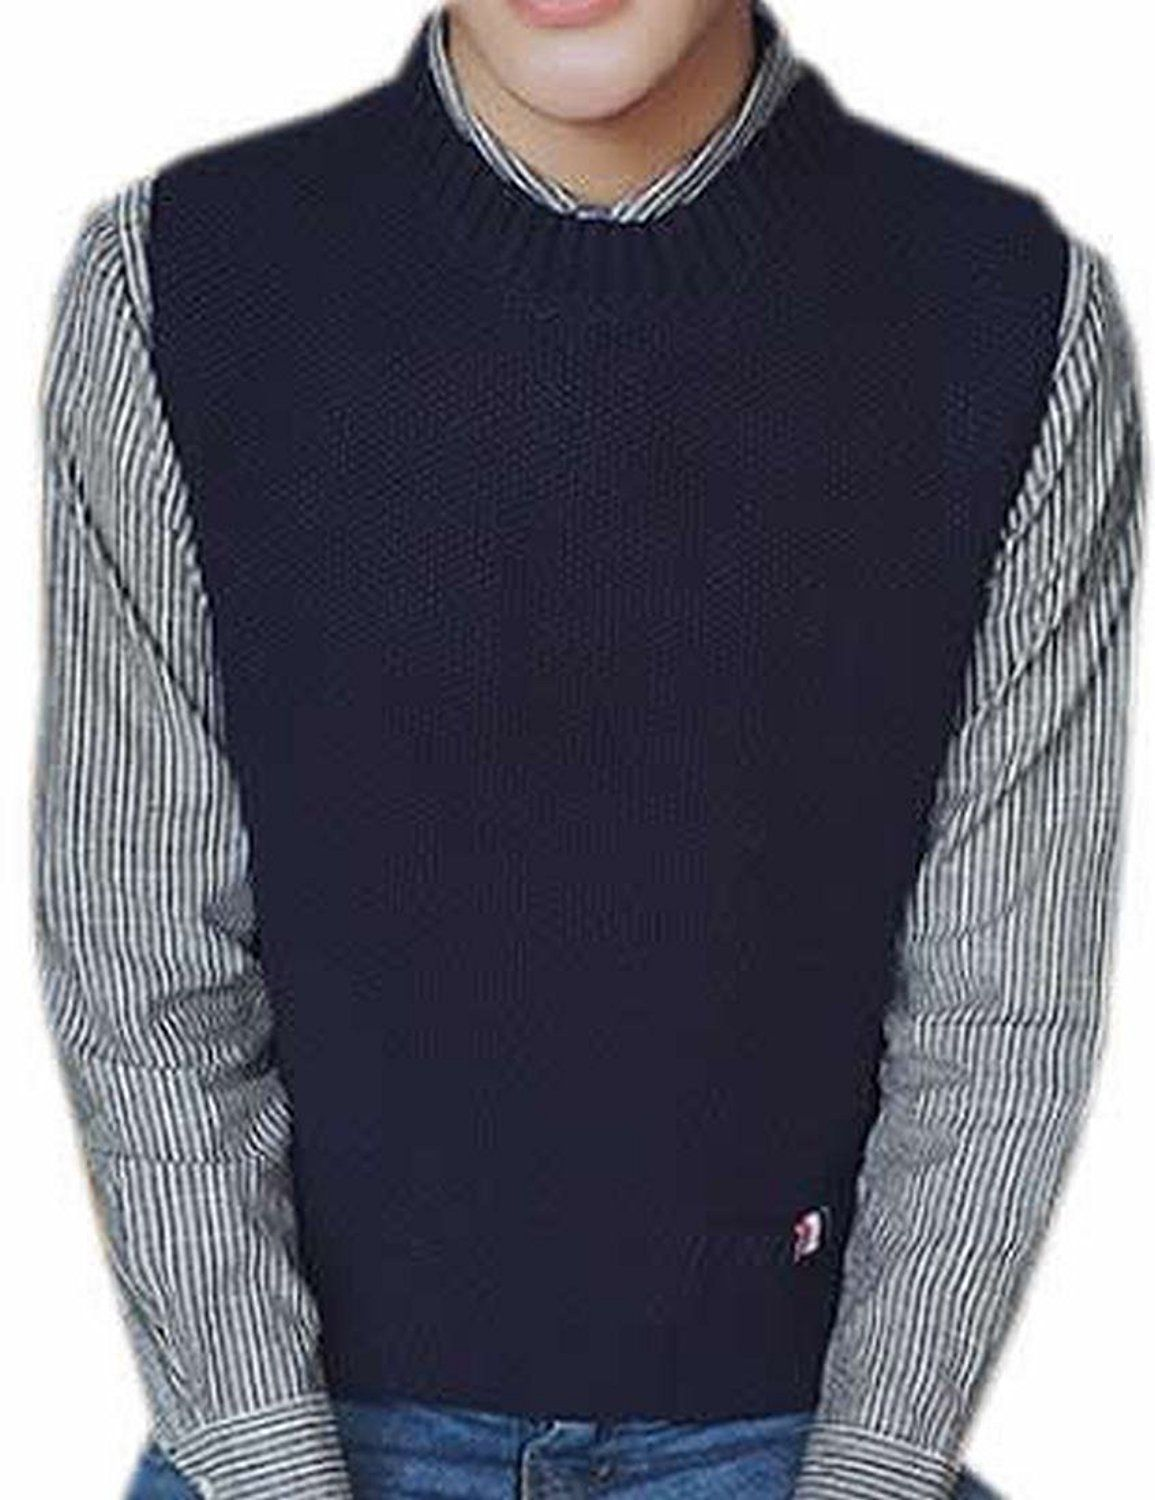 Generic Mens Casual Slim Crew-Neck Pocket Sweater Vests | Men's ...